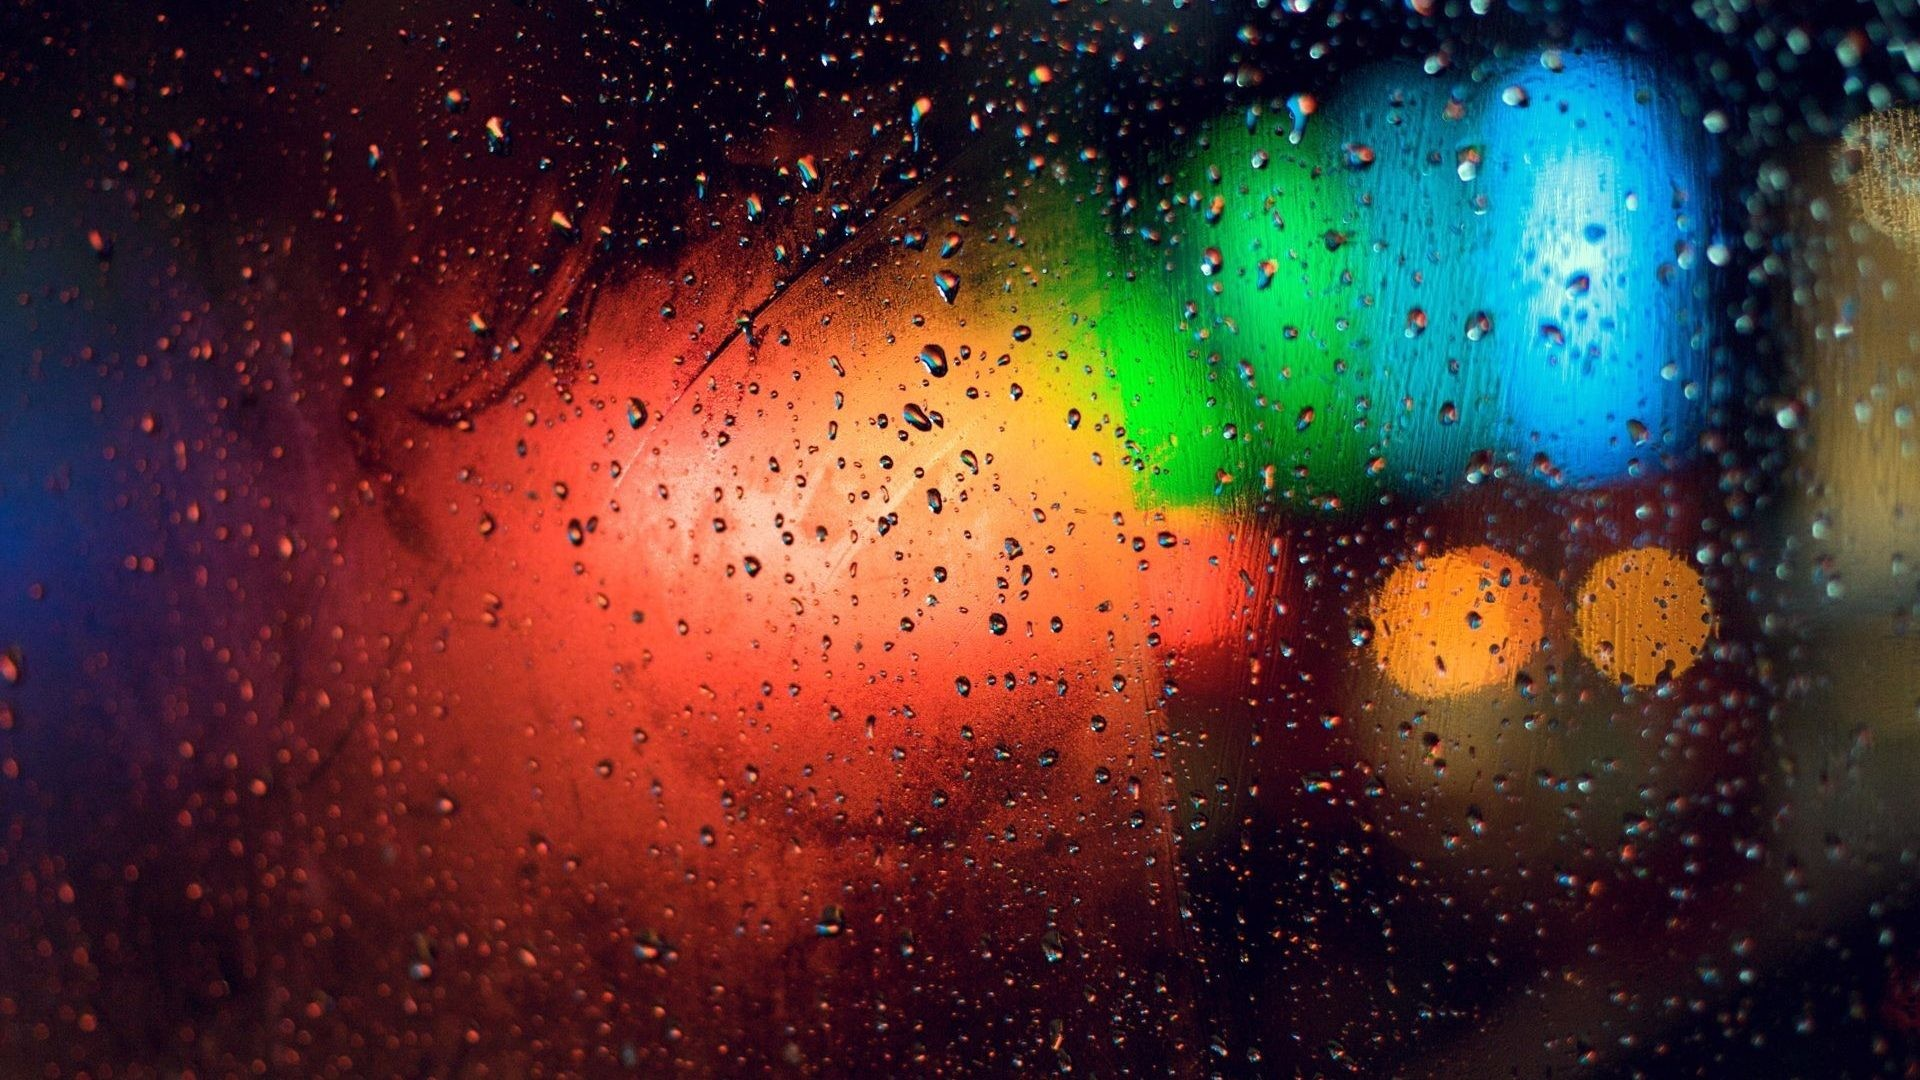 Window Tag – Panes Glass Window Rain Cool Nature Desktop Backgrounds for HD  16:9